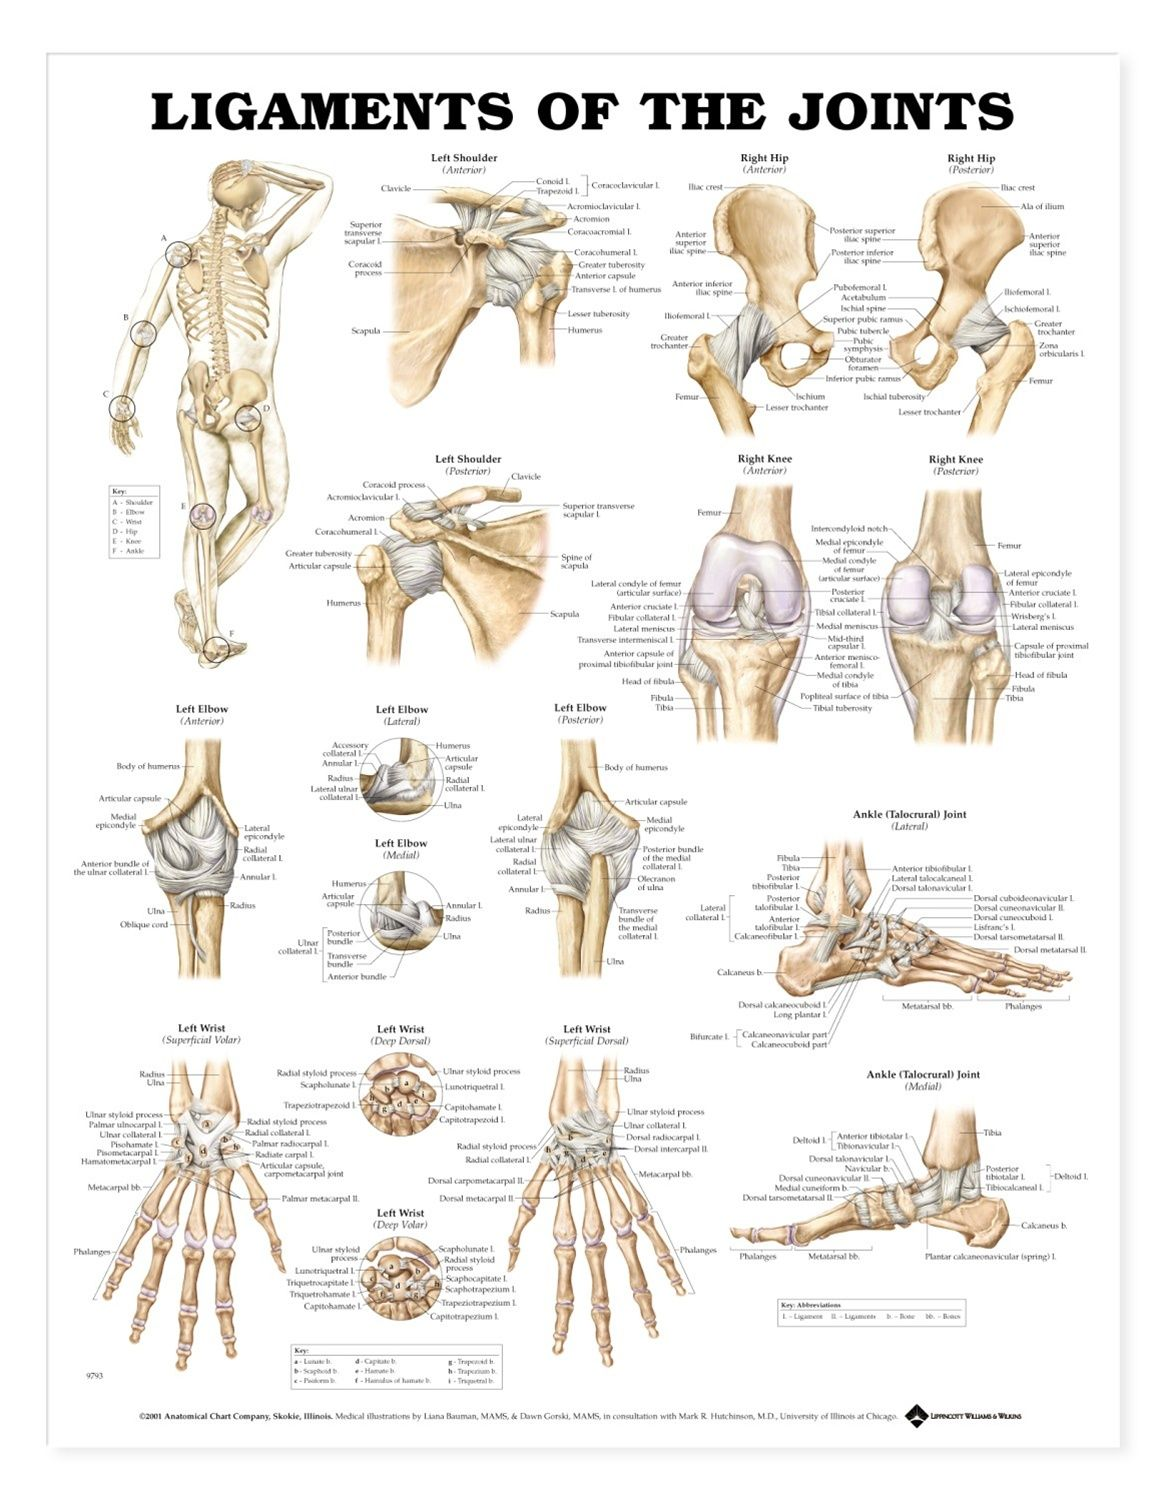 Ligaments Of The Joints Anatomy Charts Amp Terminology For Major Joints